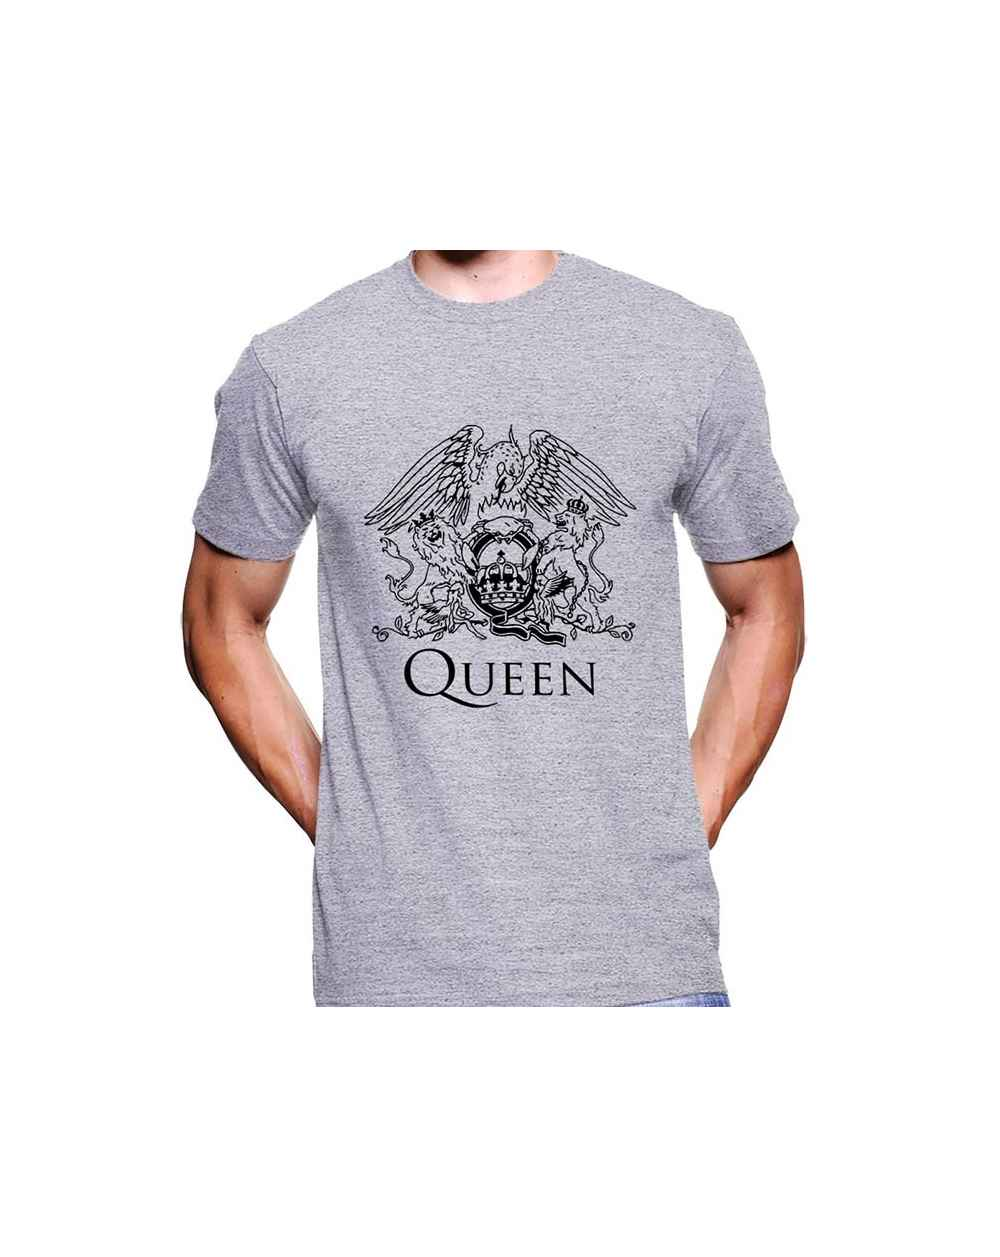 Camiseta Estampada Hombre Queen Black